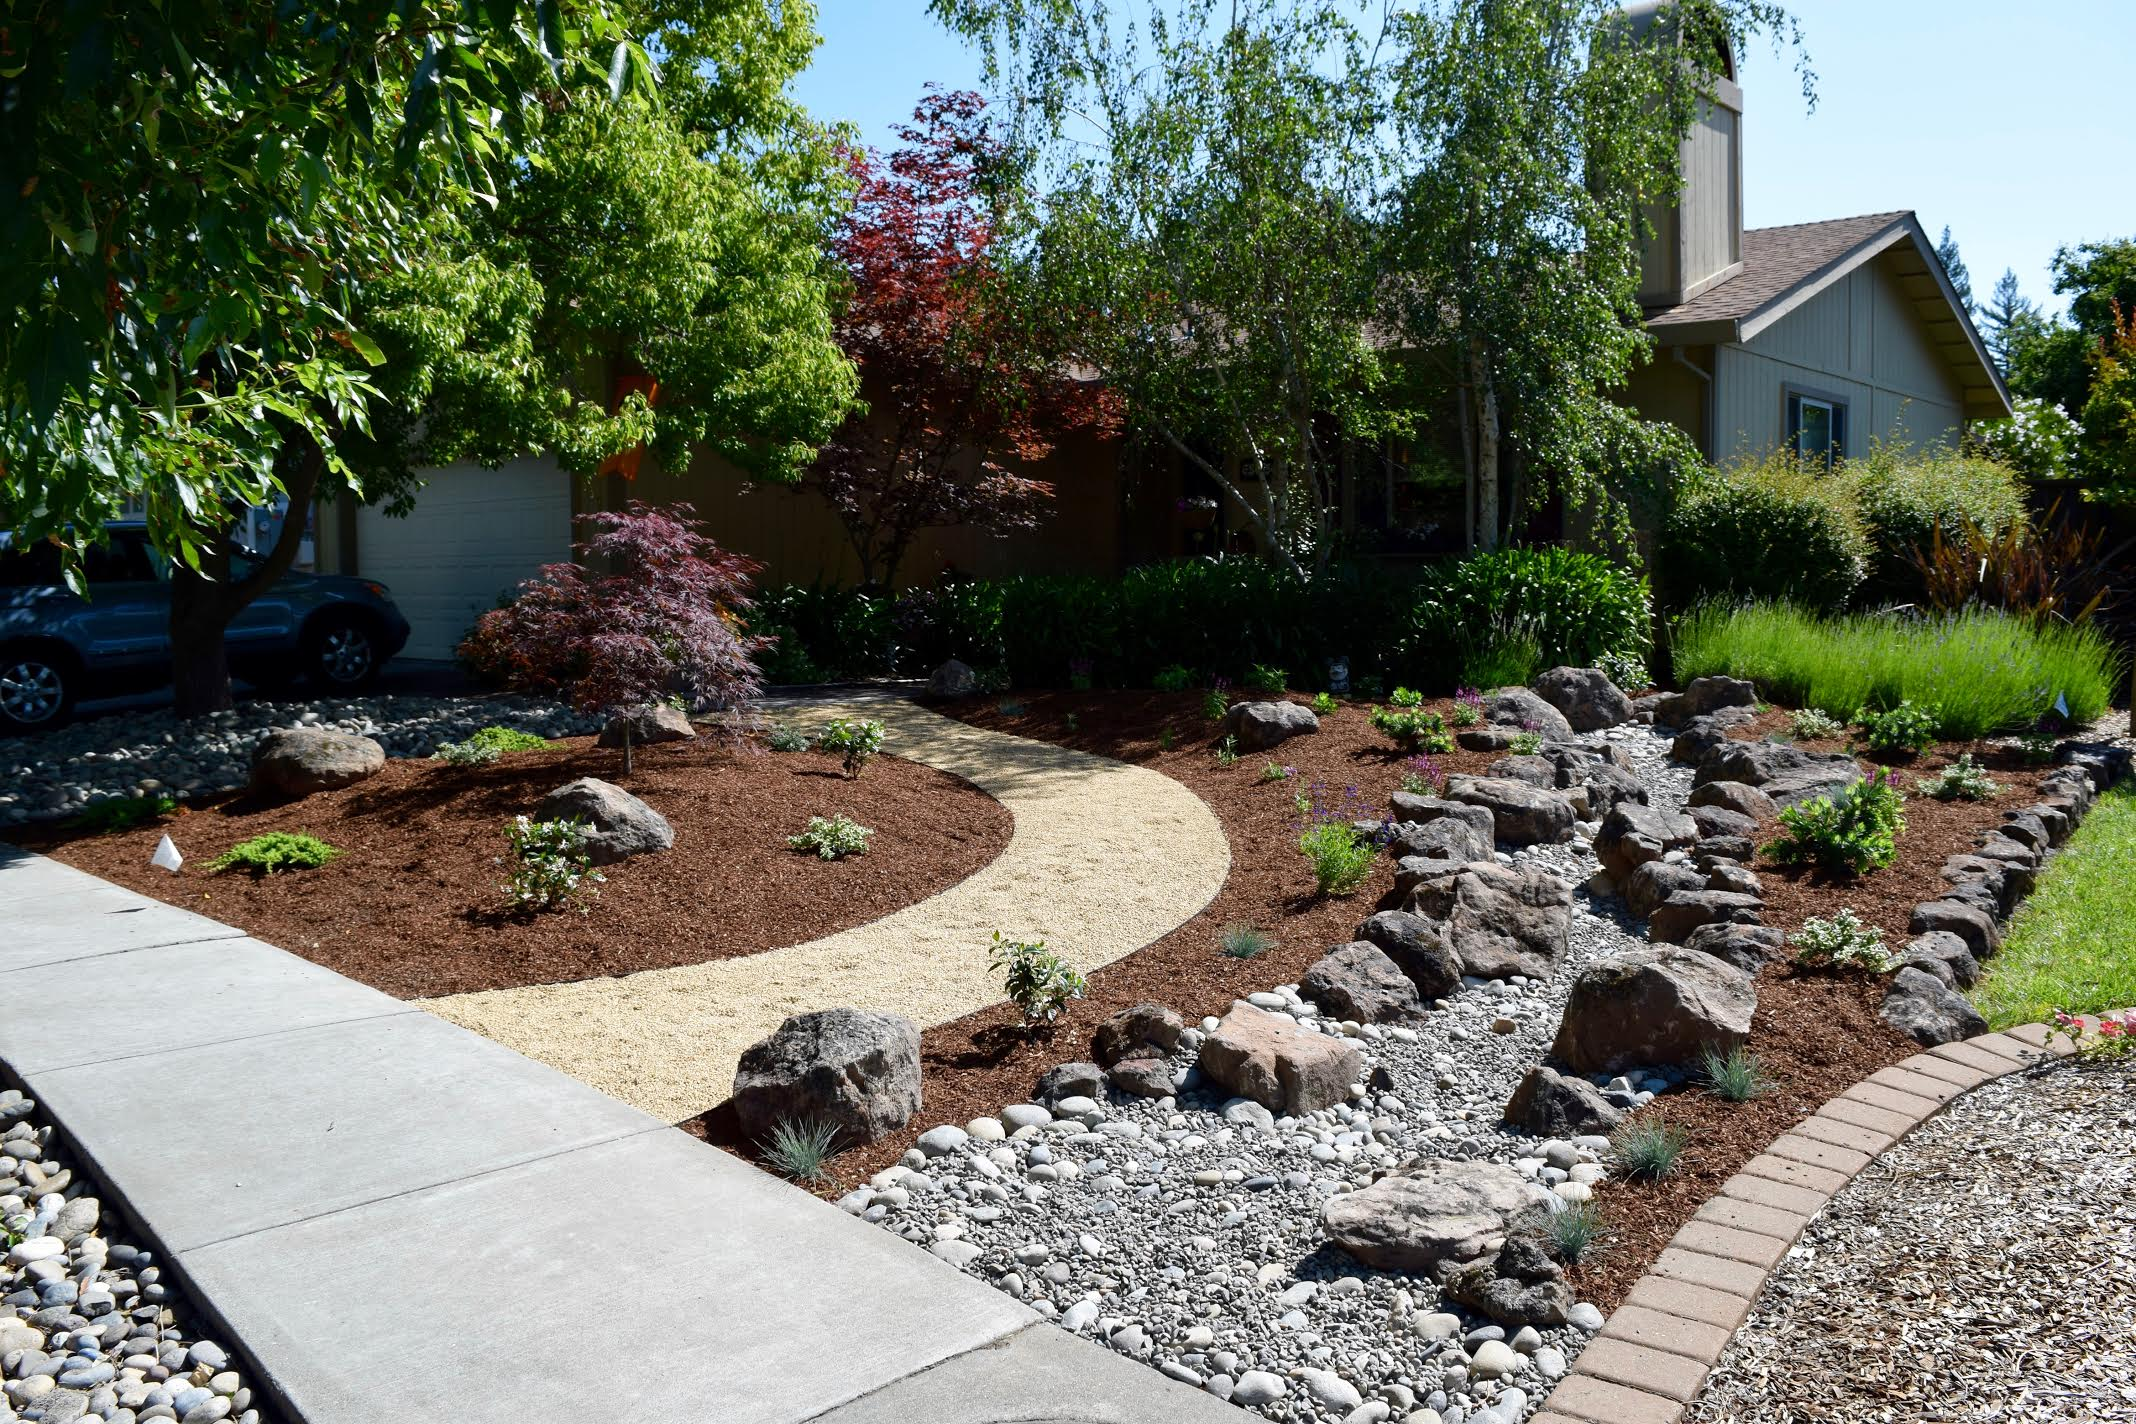 Photo of front yard lawn removal with drought tolerant planting.